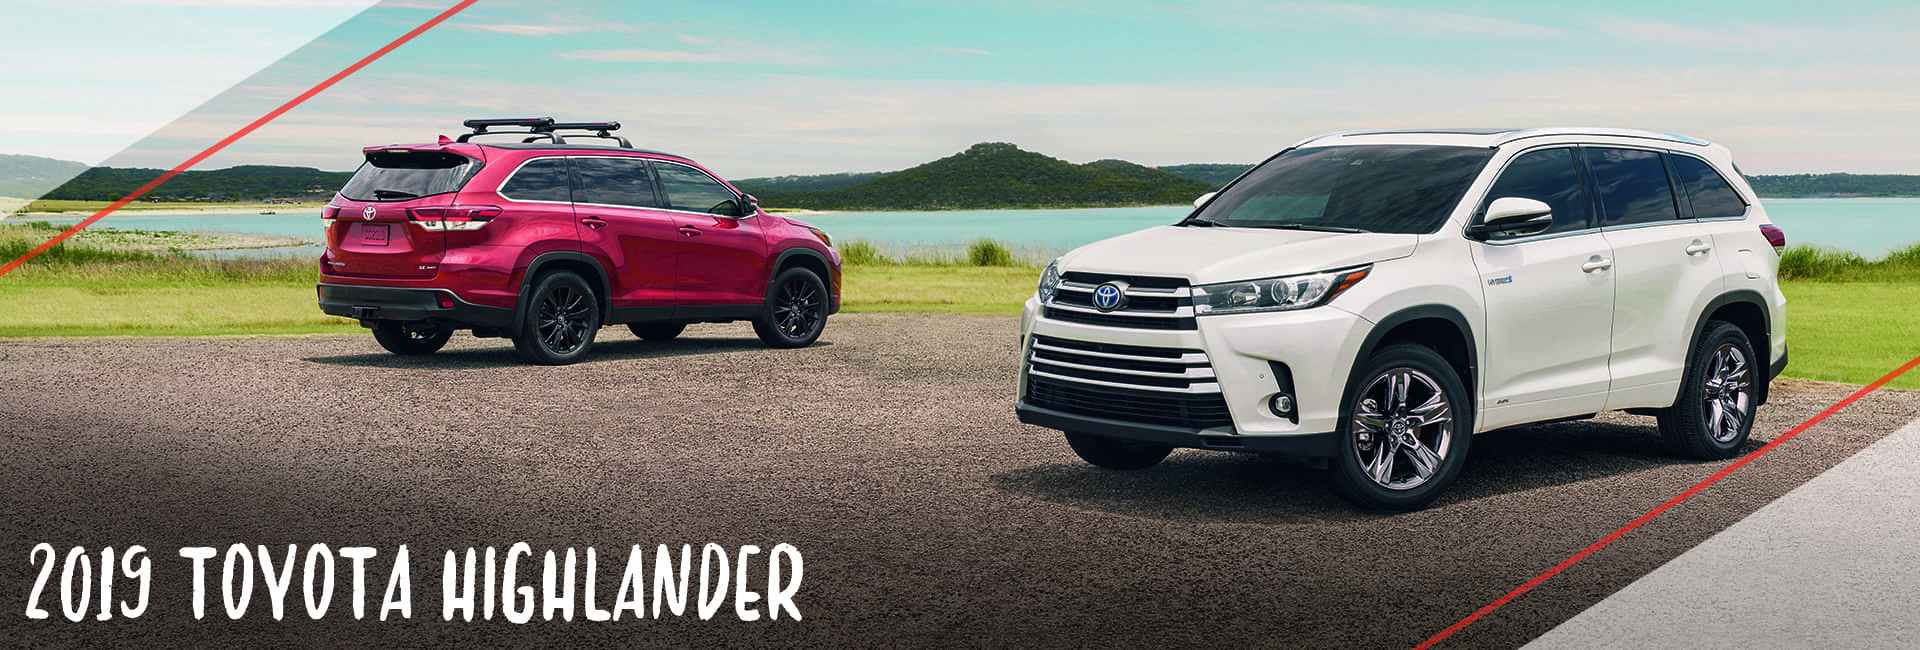 Introducing the All-New 2019 Toyota Highlander | Lancaster Toyota